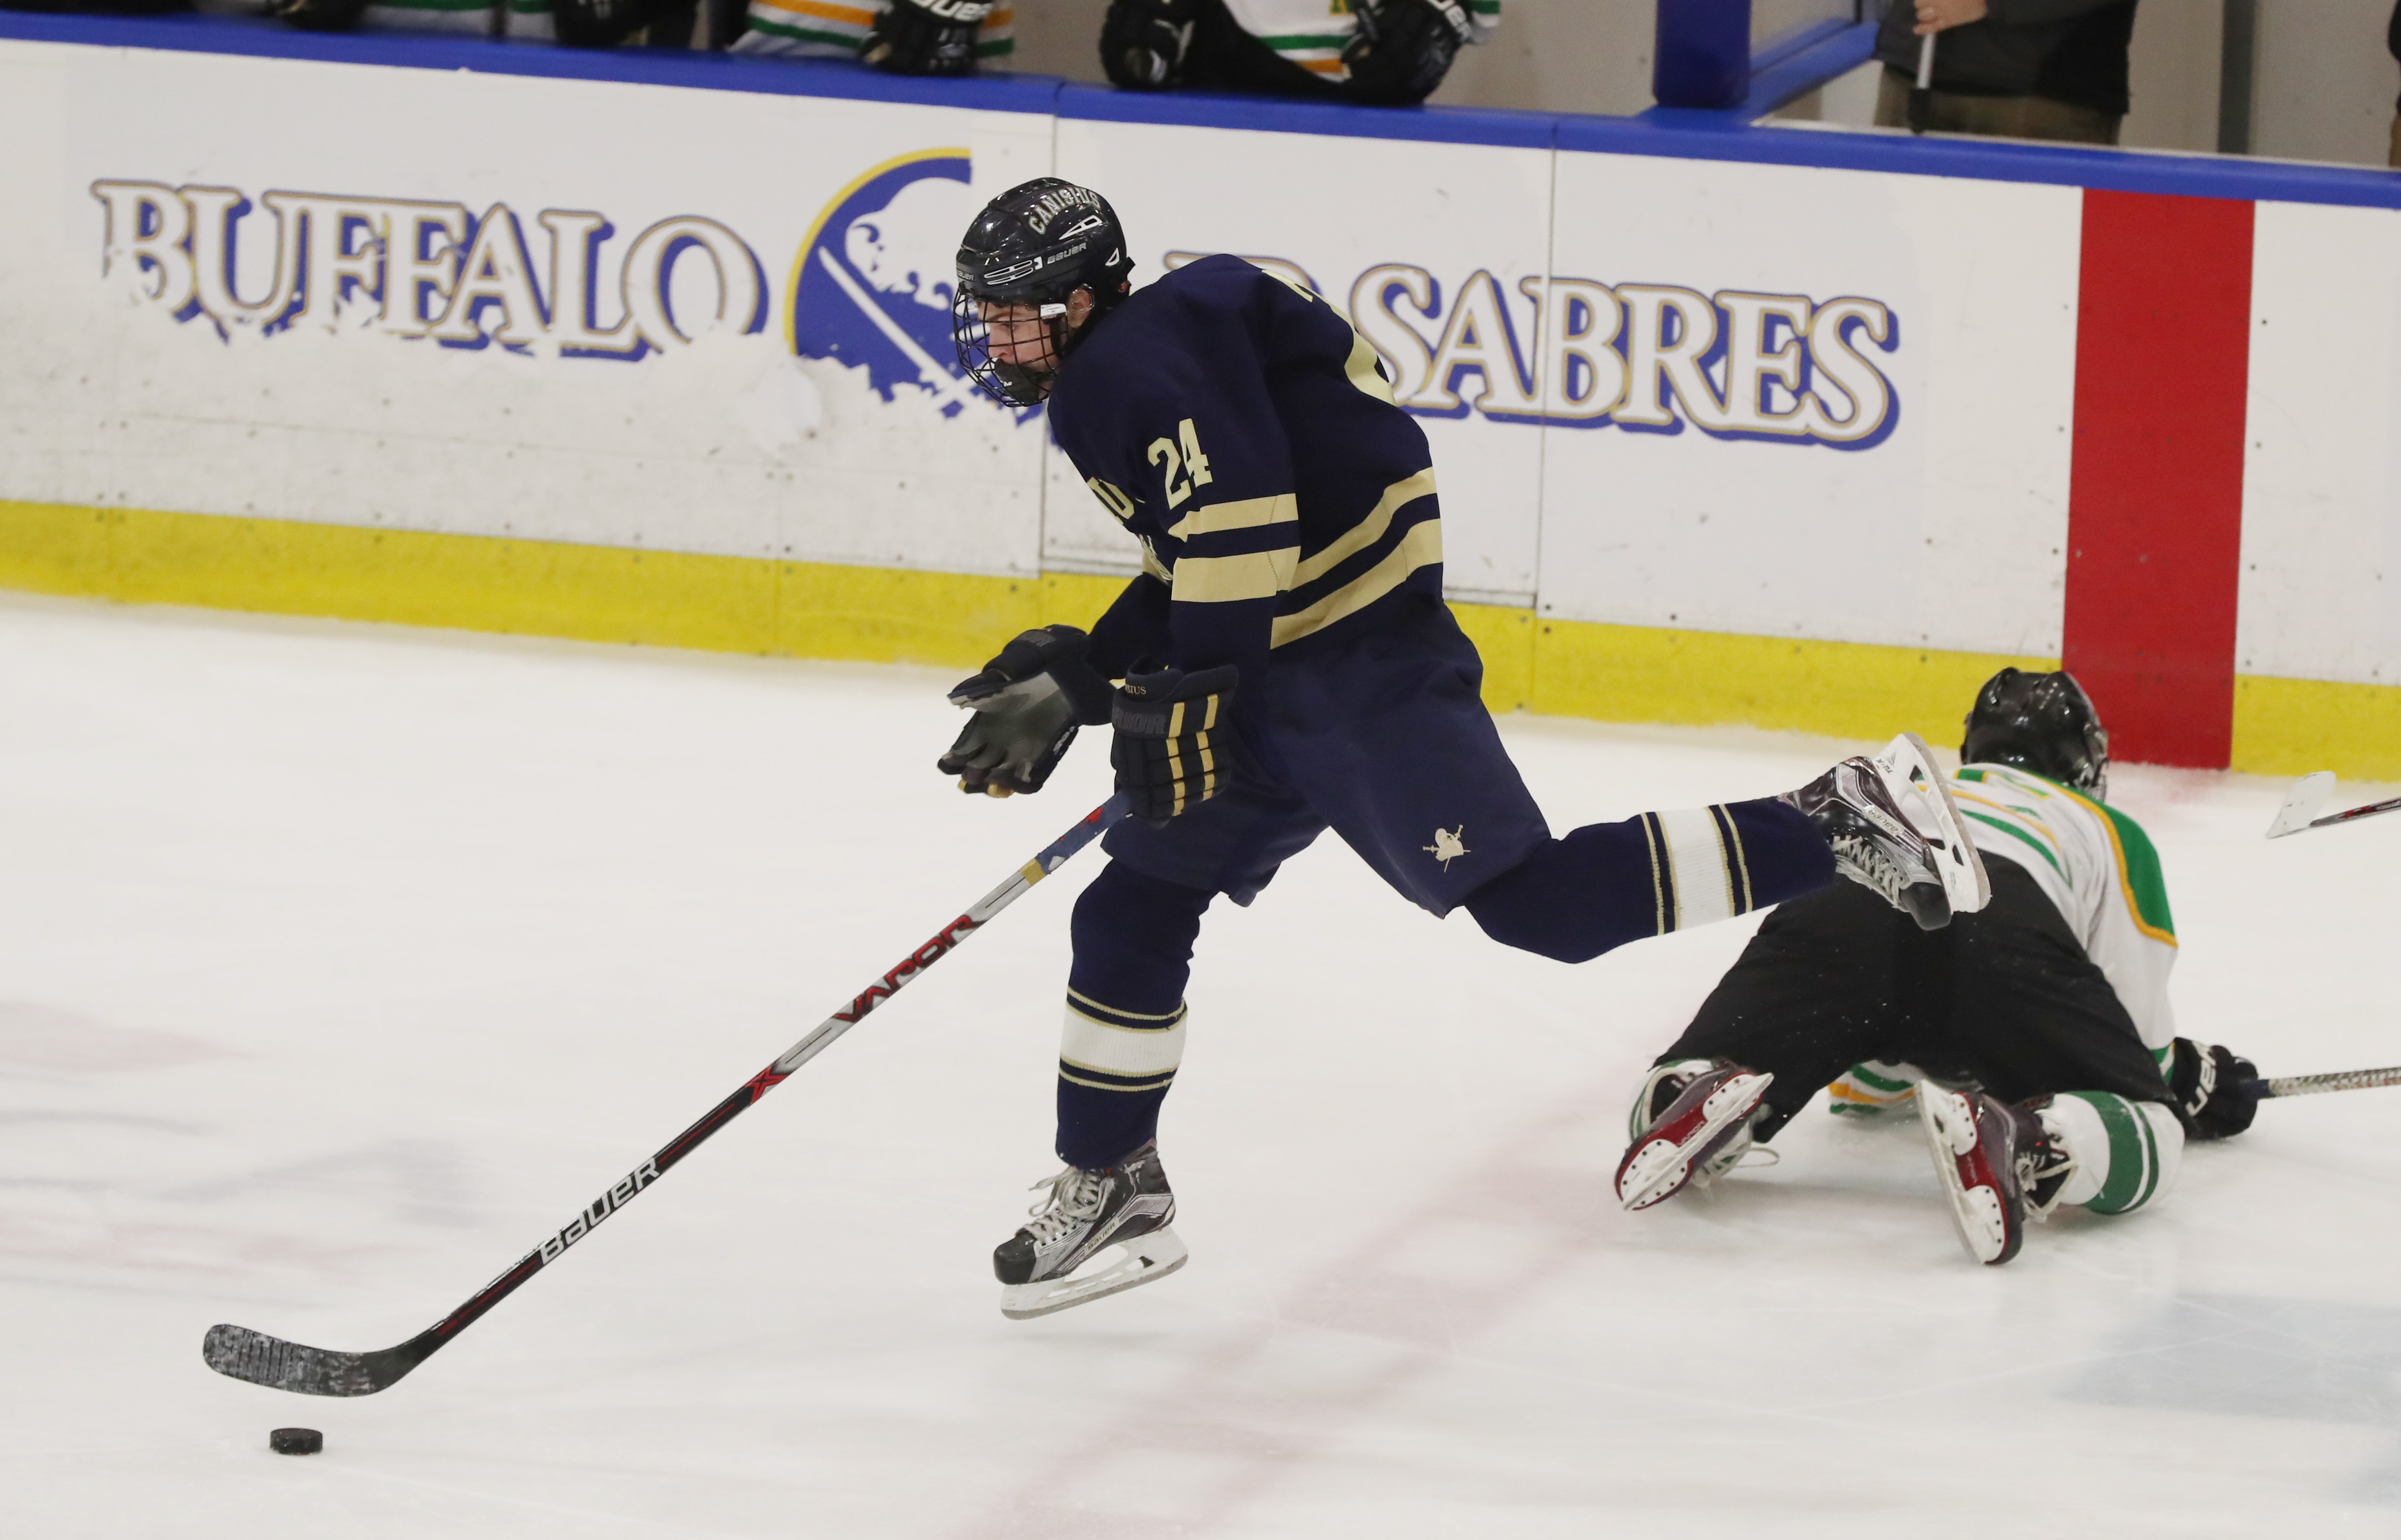 Canisius' Jordan Martin jumps over Bishop Timon-St. Jude's Mike Neenen for the puck in the second period at HarborCenter   (James P. McCoy/Buffalo News)